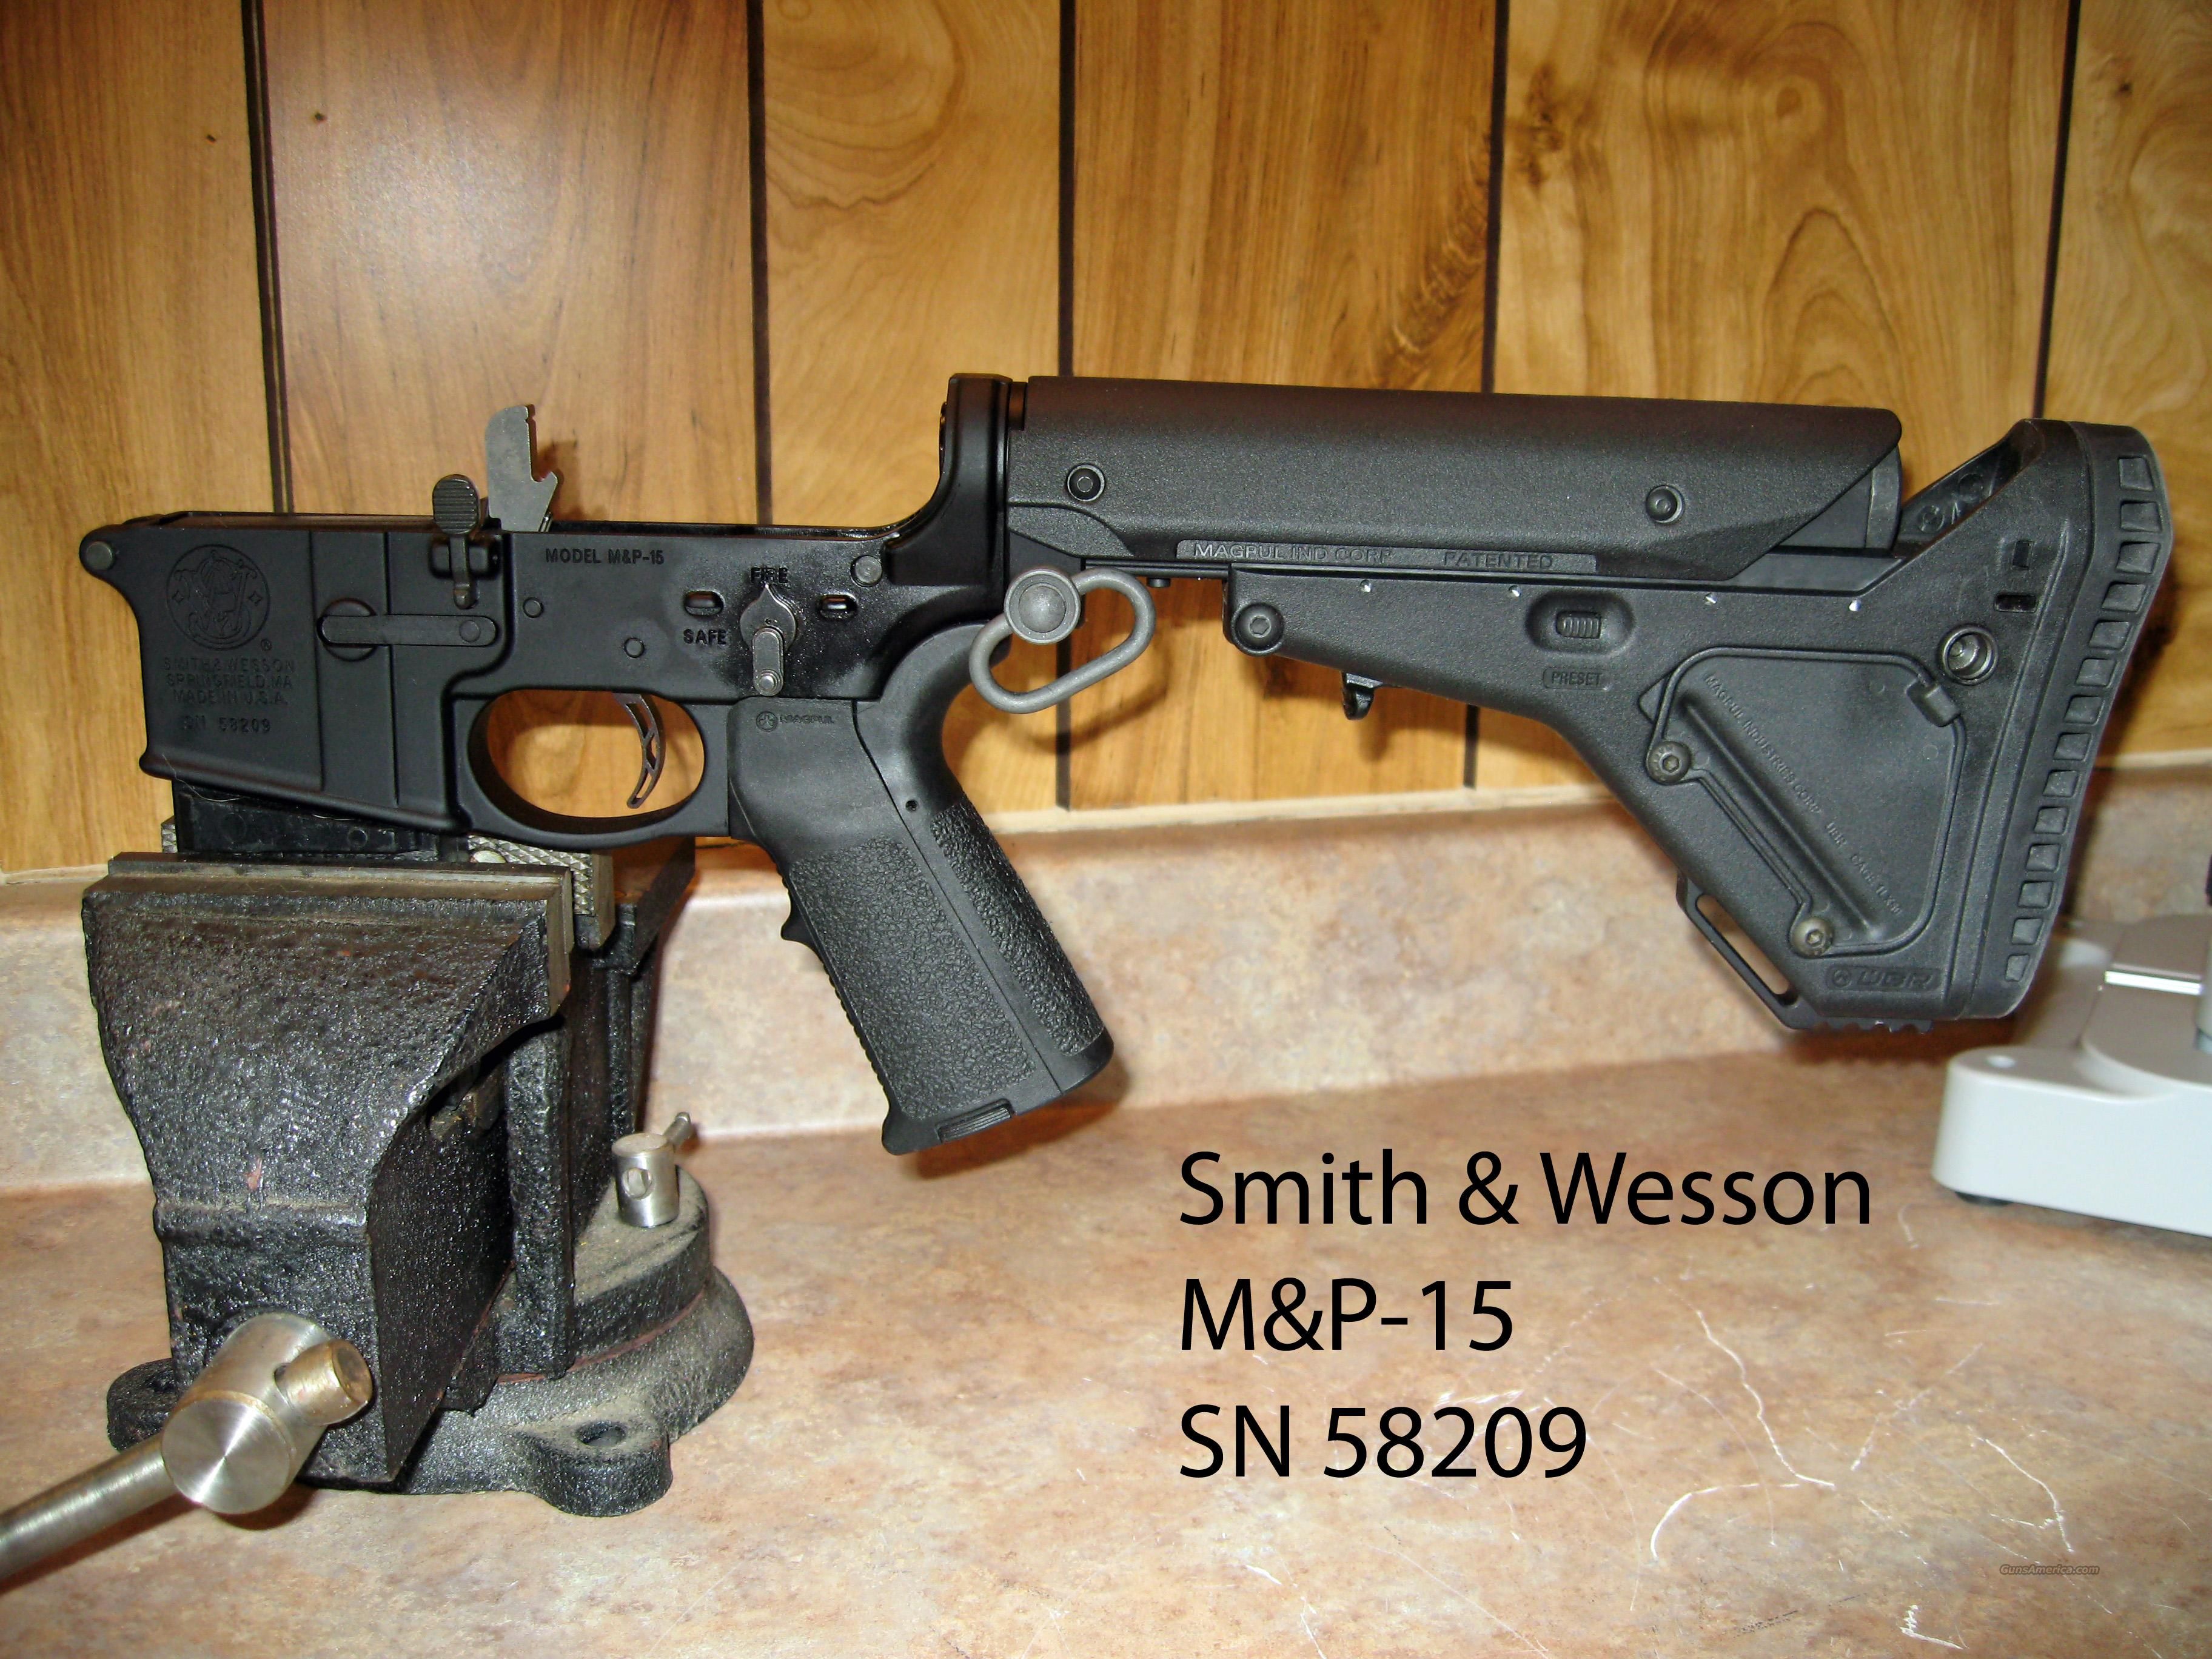 S&W M&P-15 - .223 AR Custom  Lower Complete  Guns > Rifles > AR-15 Rifles - Small Manufacturers > Lower Only